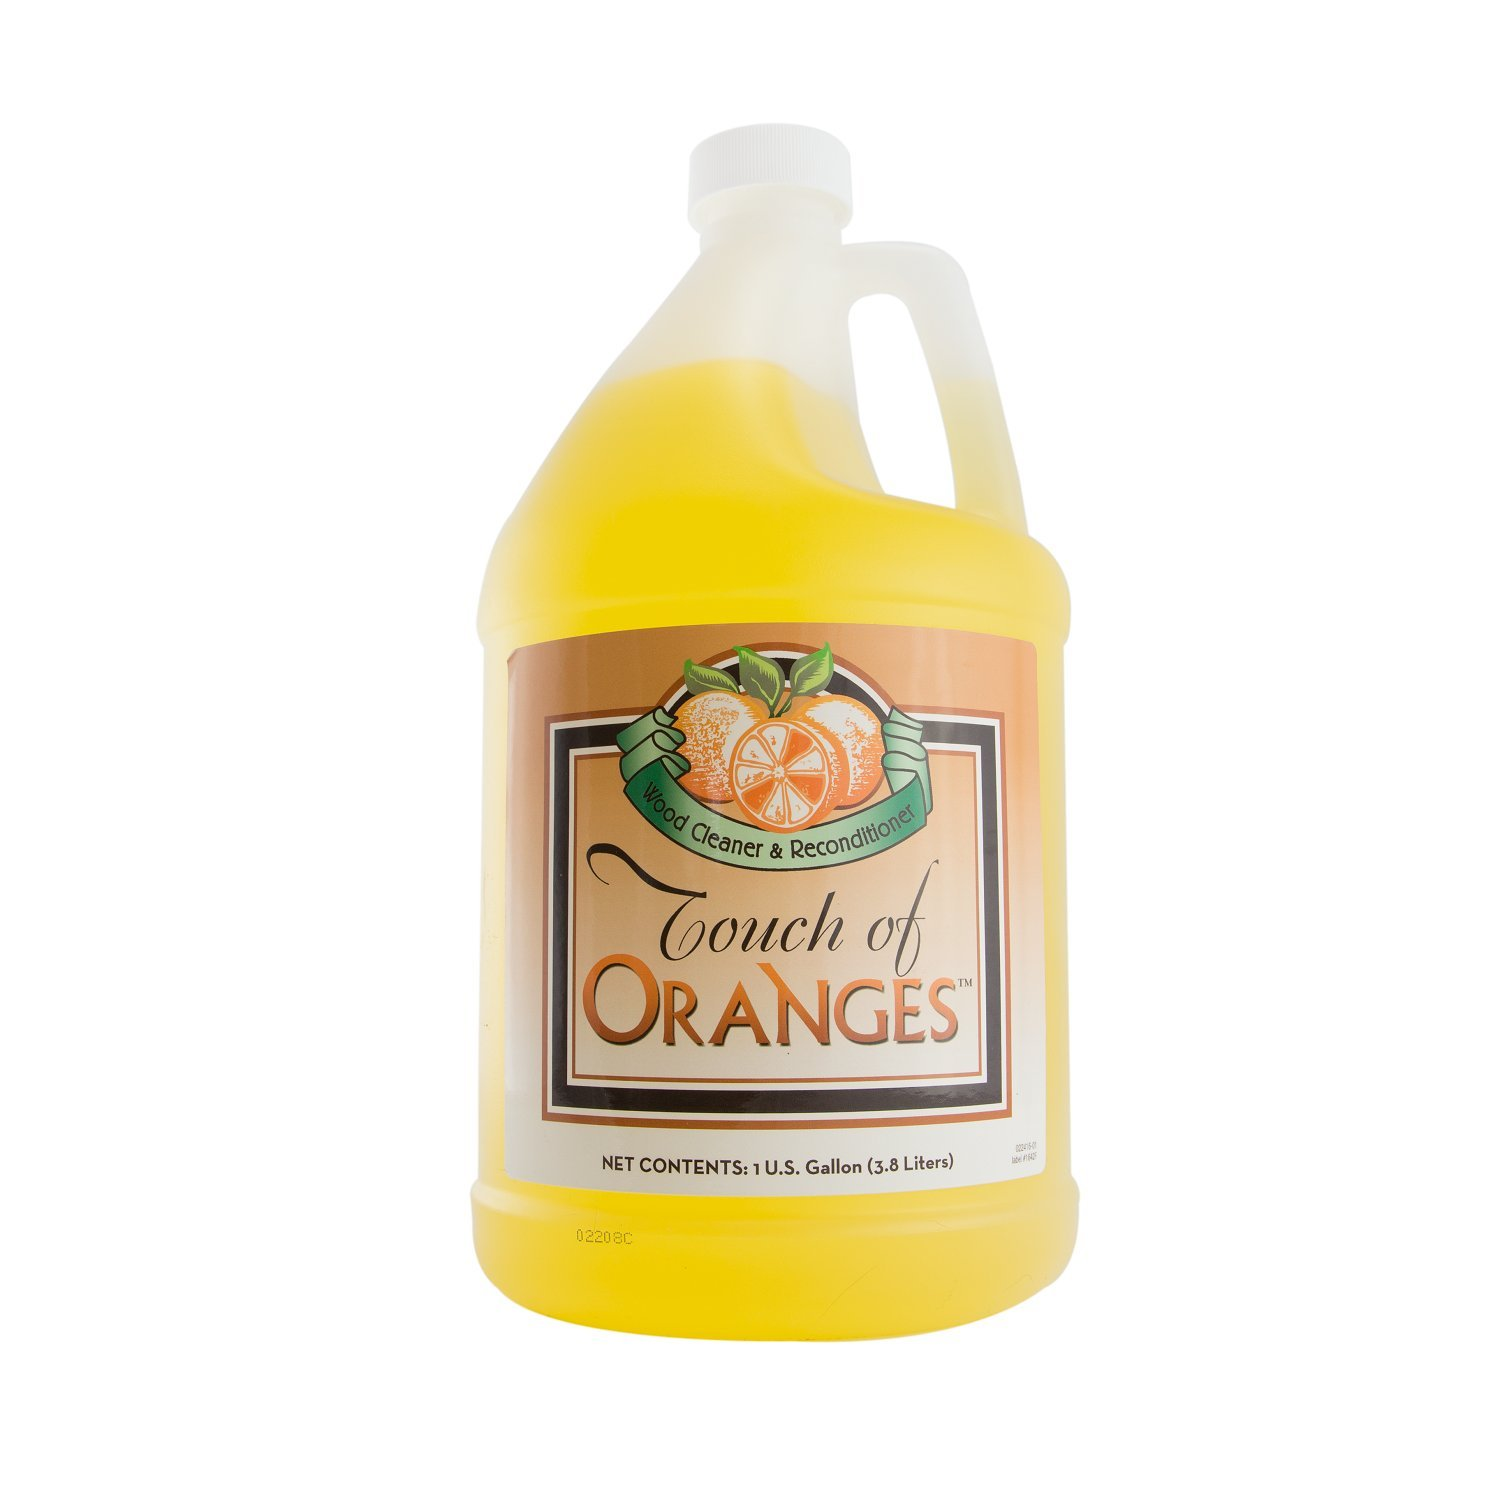 Wood Cleaner and Restorer for Hardwood Floor, Wood Furniture and Wood Cabinet Cleaner with Orange Oil (Gallon) by Touch Of Oranges